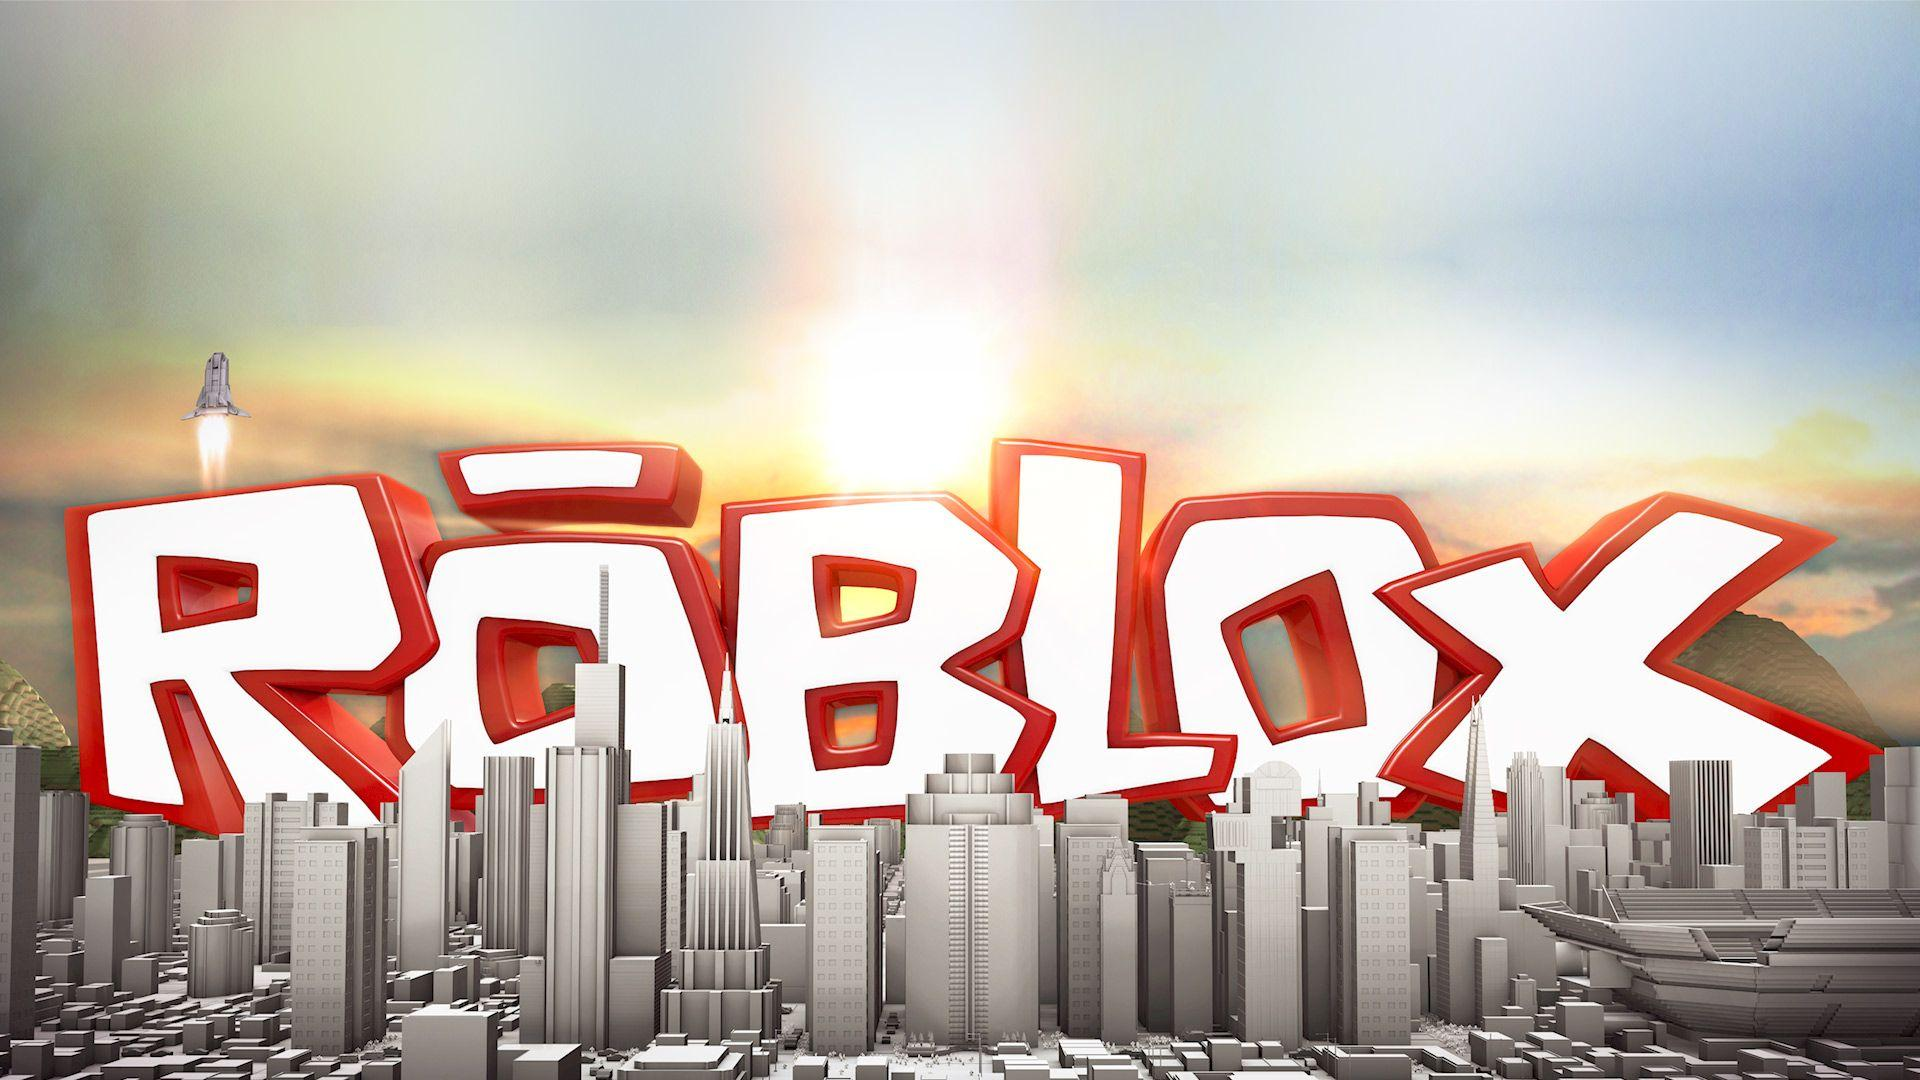 Roblox Wallpapers   Top Roblox Backgrounds   WallpaperAccess 1920x1080